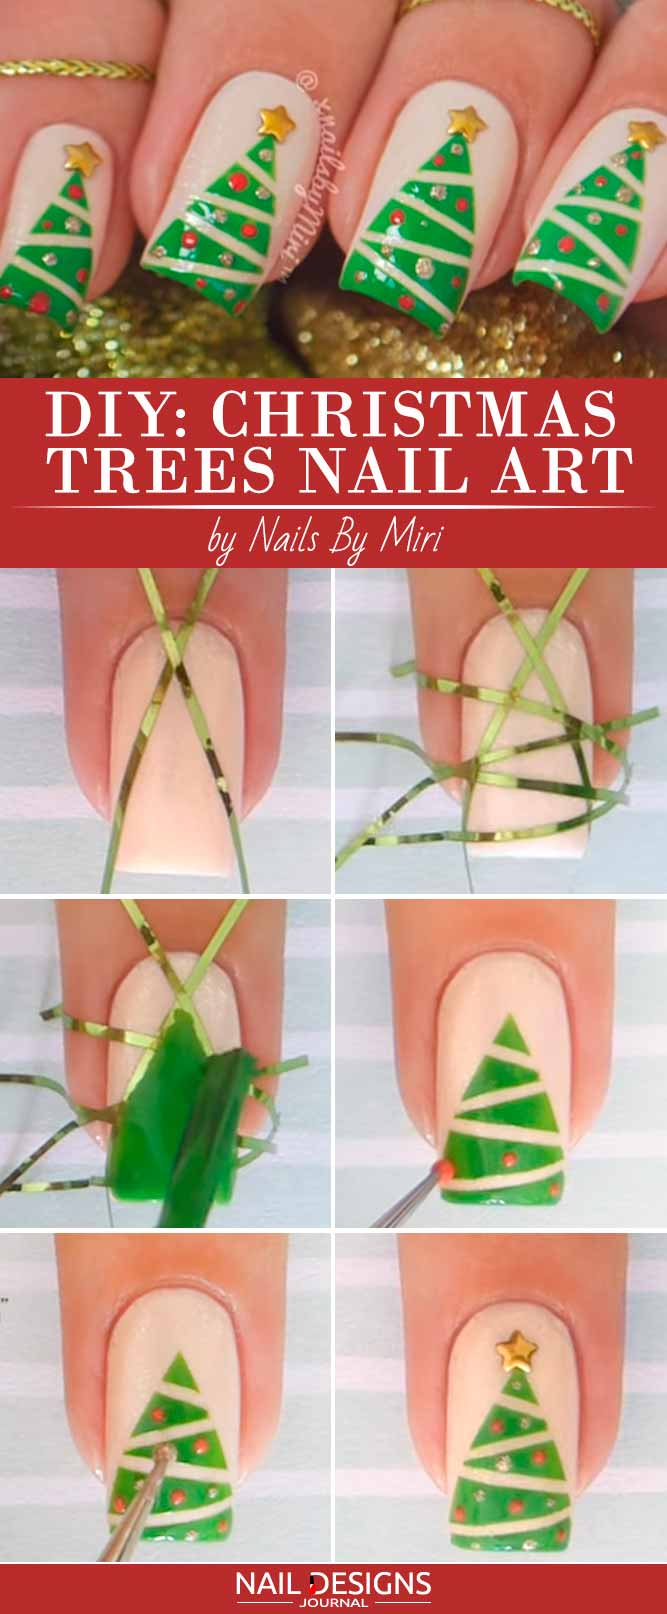 Cute Christmas Trees on Your Nails